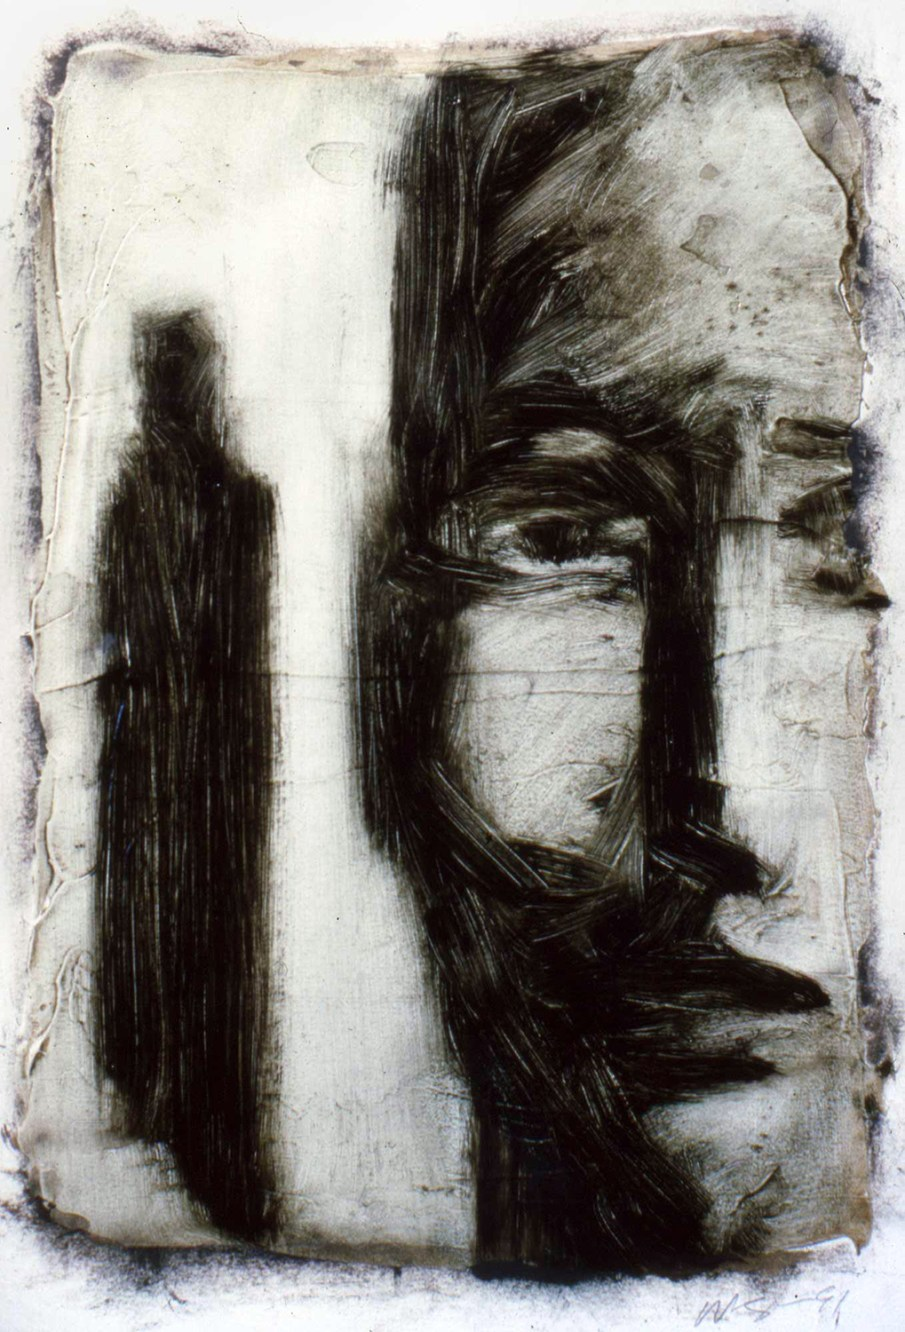 Face and Figure, oil on paper, 16 X 12, 1991